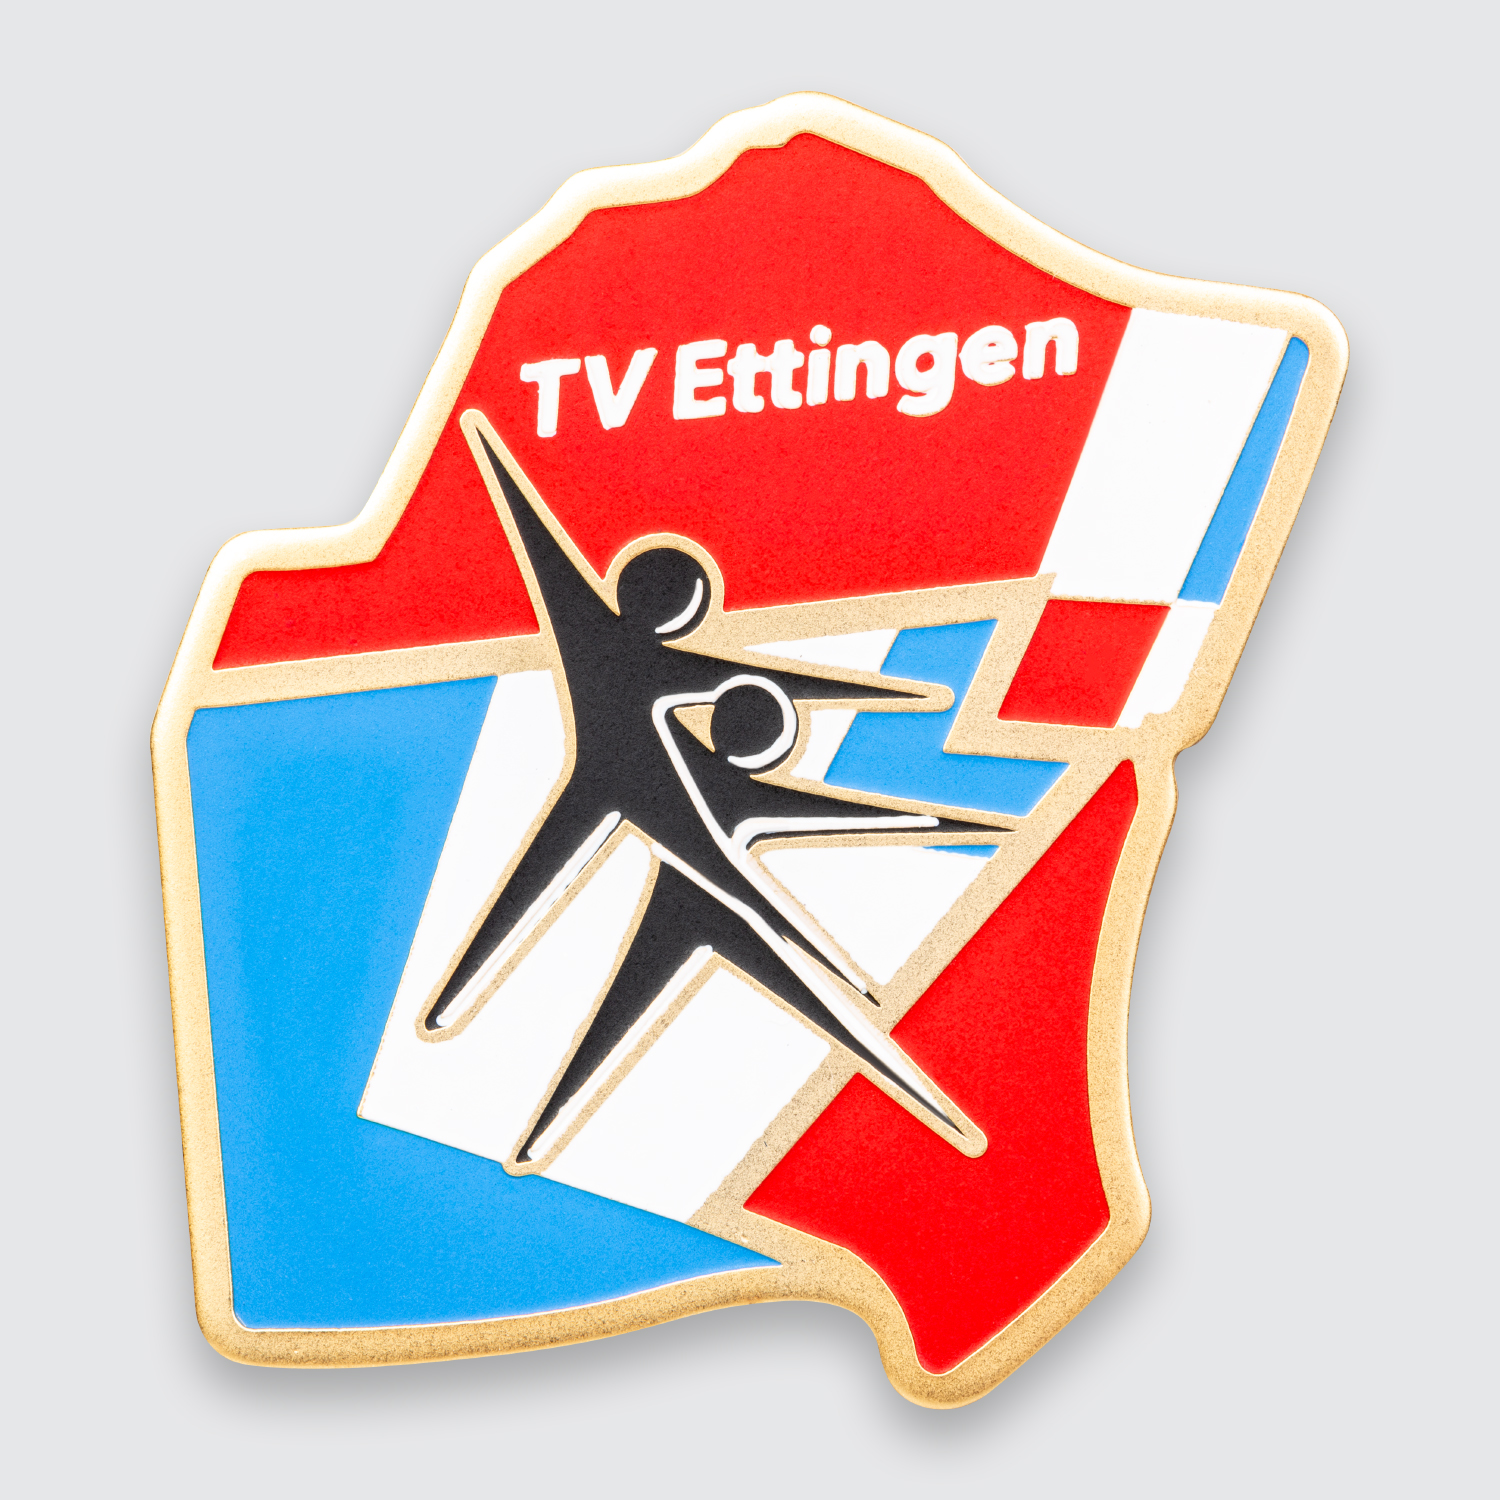 turnkreuz pin tv ettingen